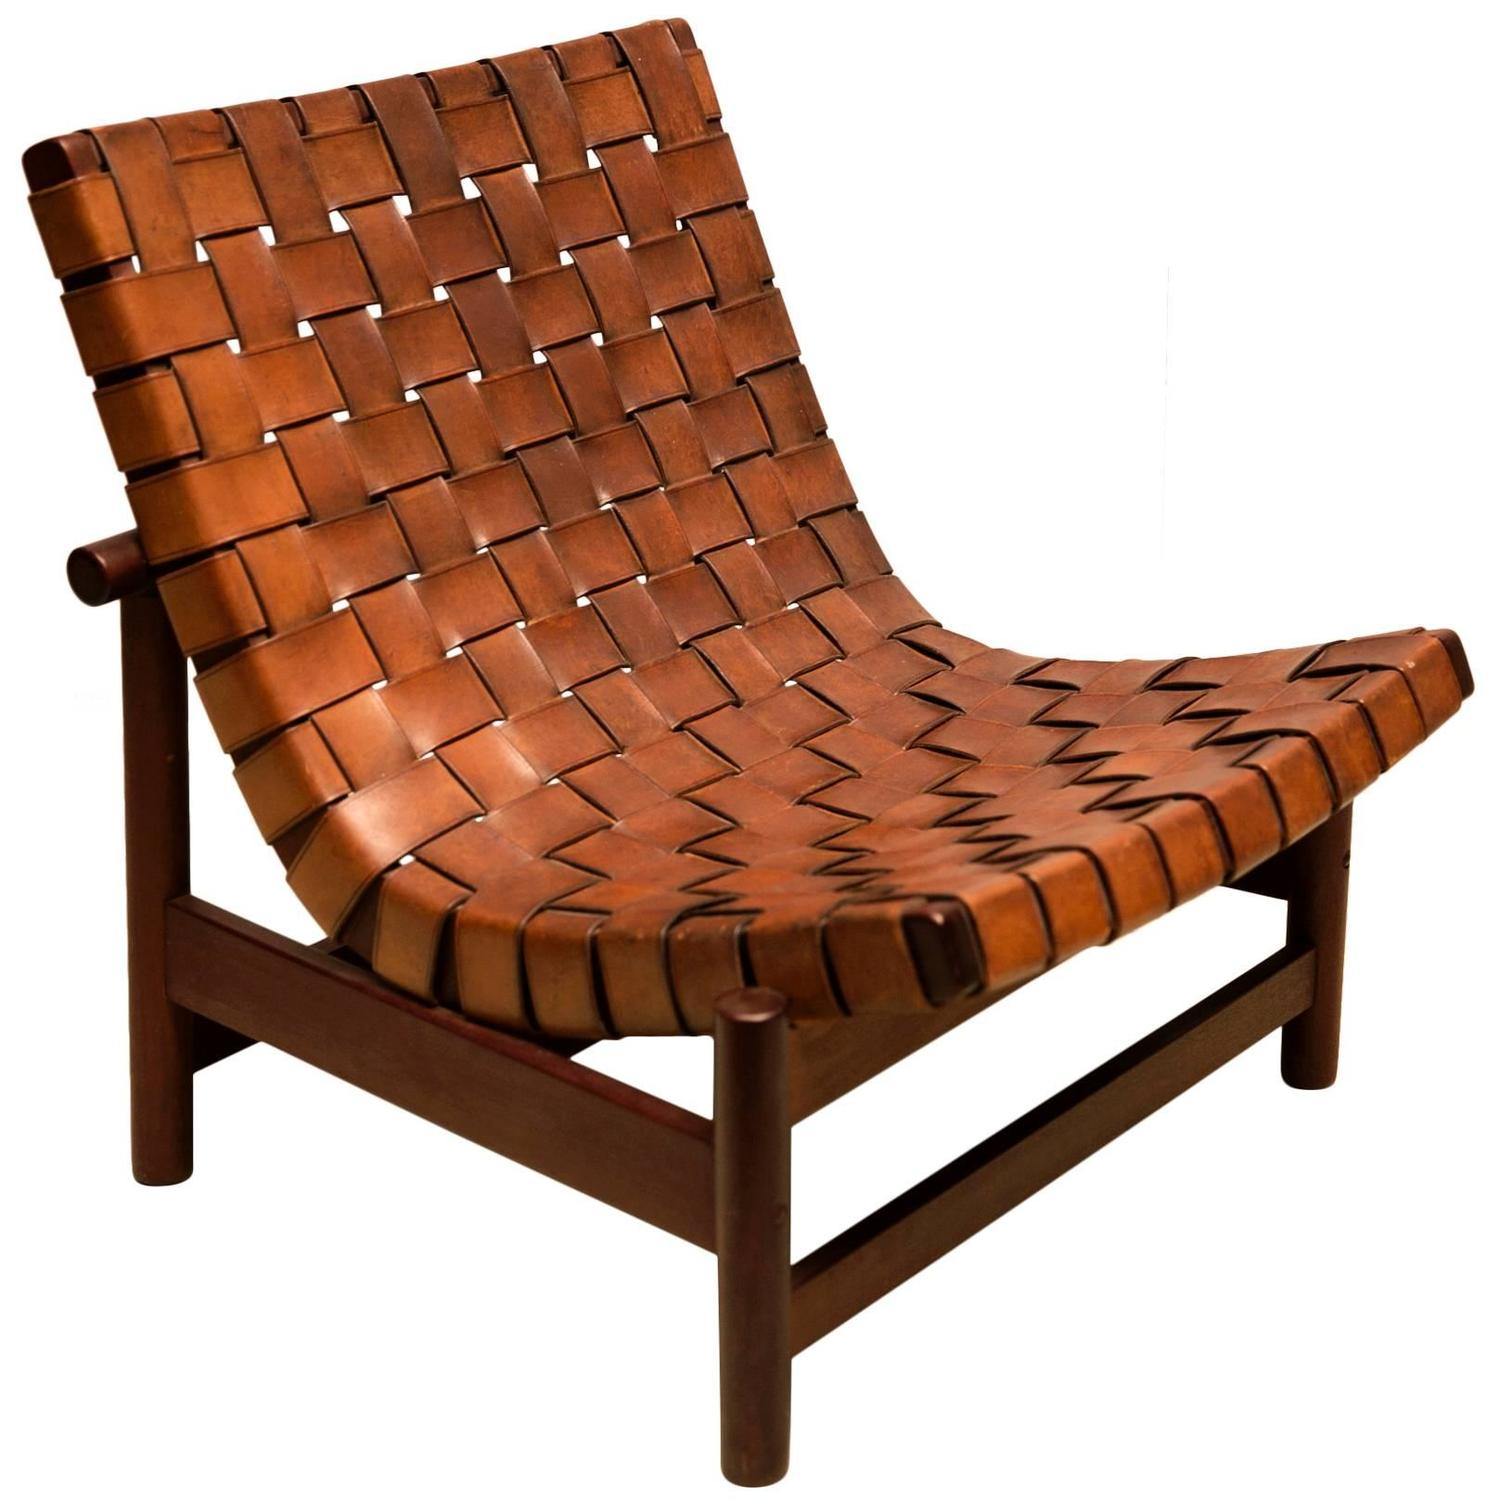 1950s Lounge Chair in Woven Saddle Leather and Cuban